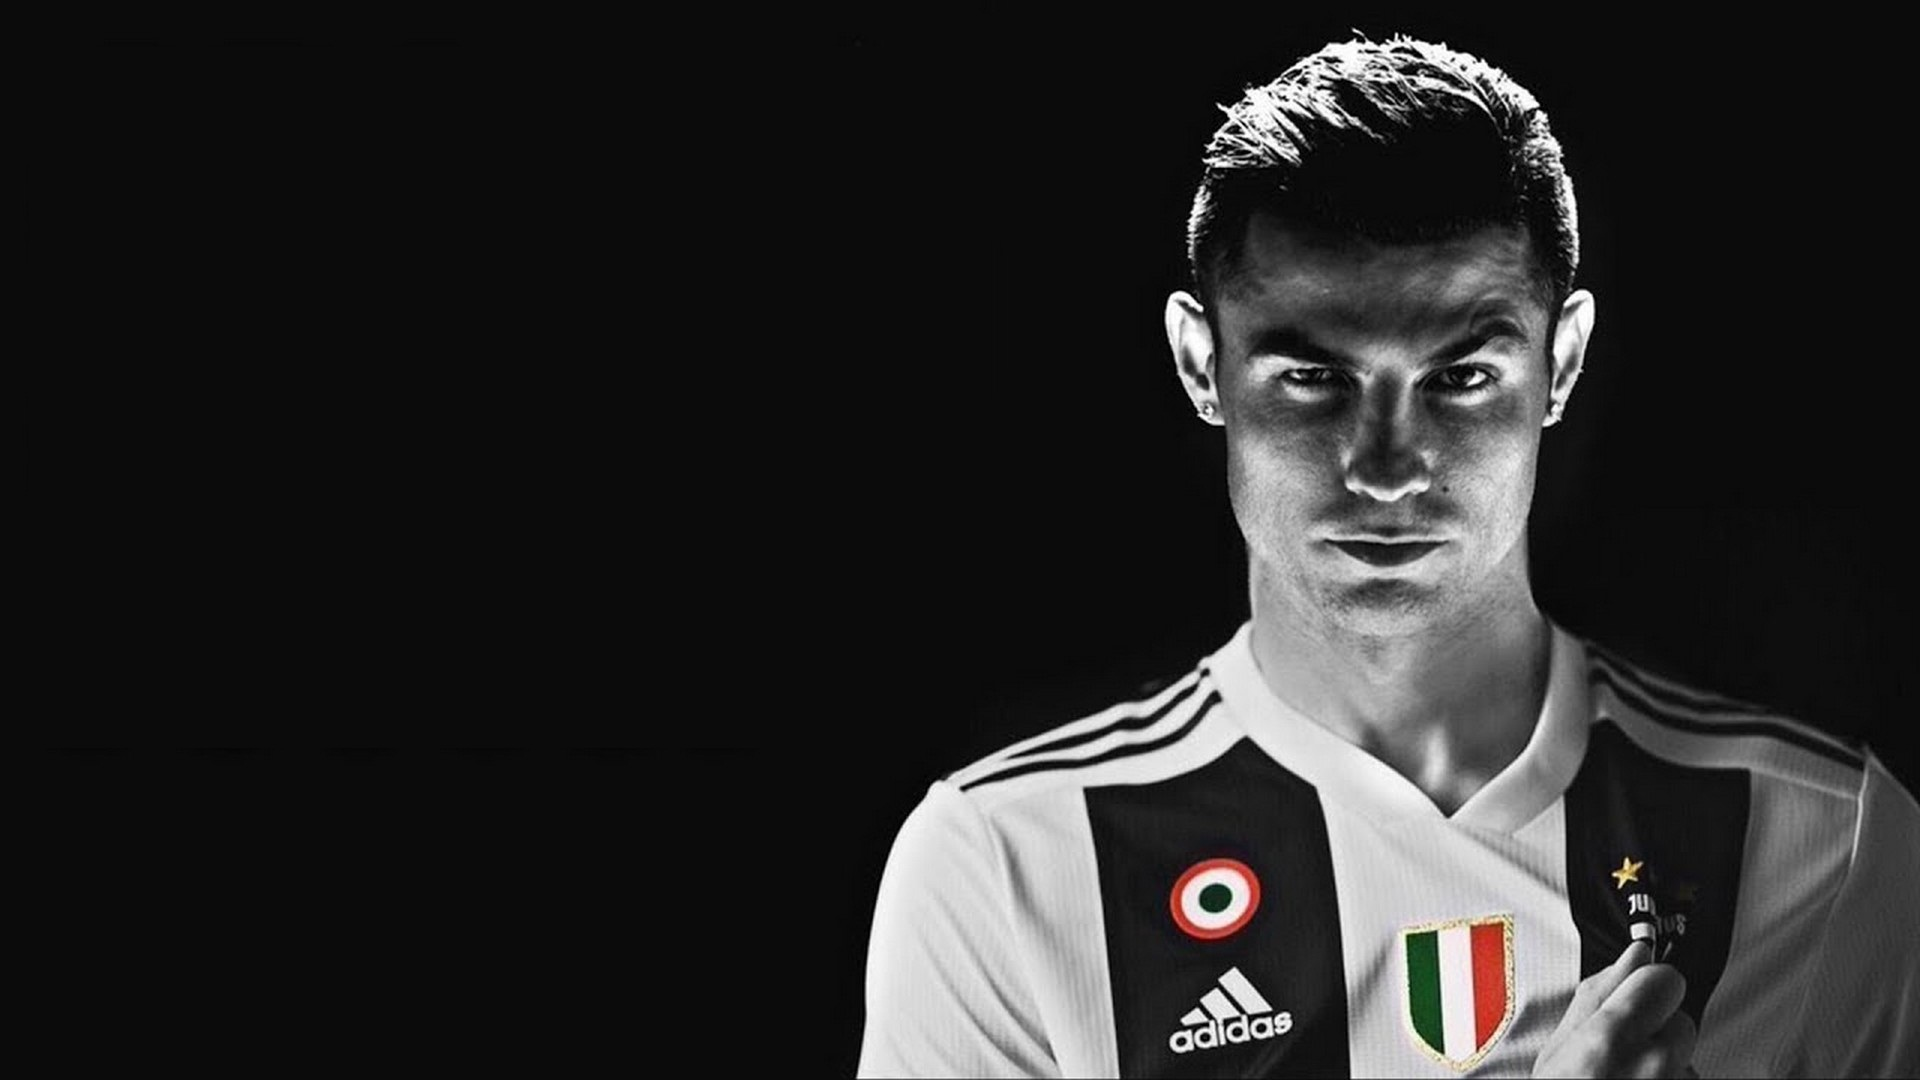 Desktop Wallpaper Cristiano Ronaldo Juventus 2021 Cute Wallpapers 1920x1080